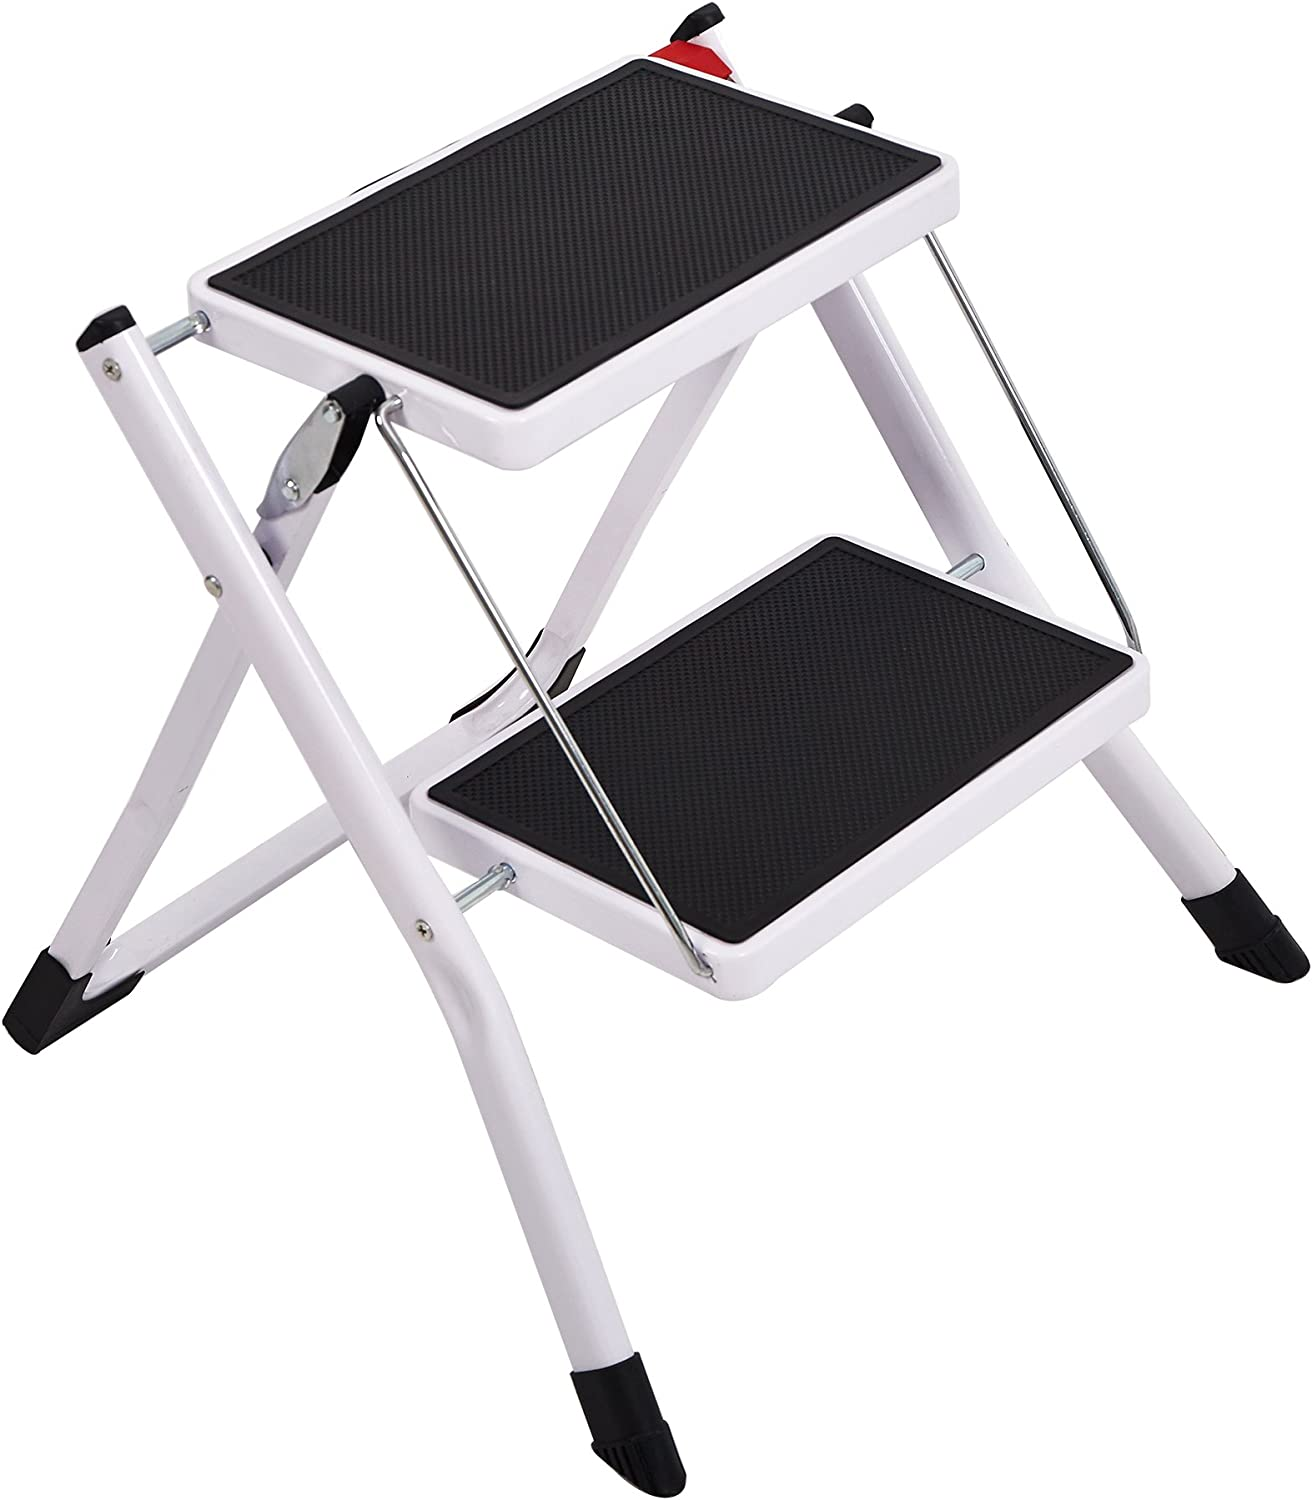 Foldable Step Stool Wide Pedal 2 Kit Fort Worth Mall Home Small Ladder Cheap super special price